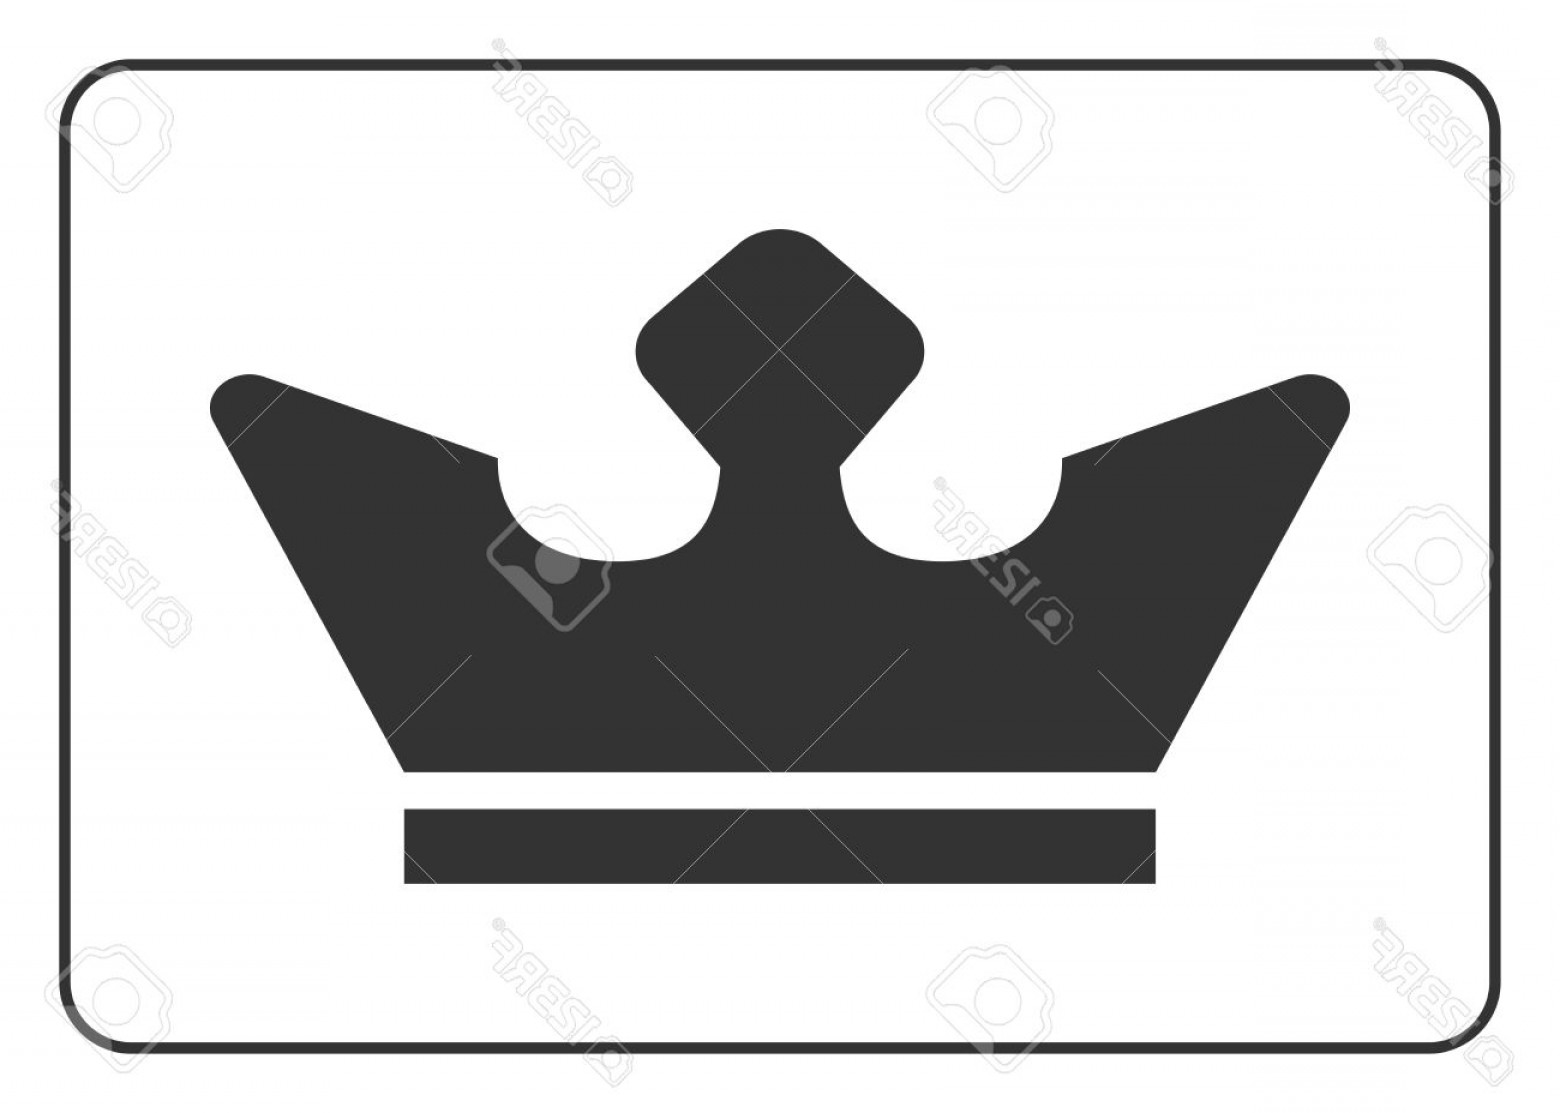 1560x1113 Photostock Vector Crown Icon Black Shape Sign Isolated On White